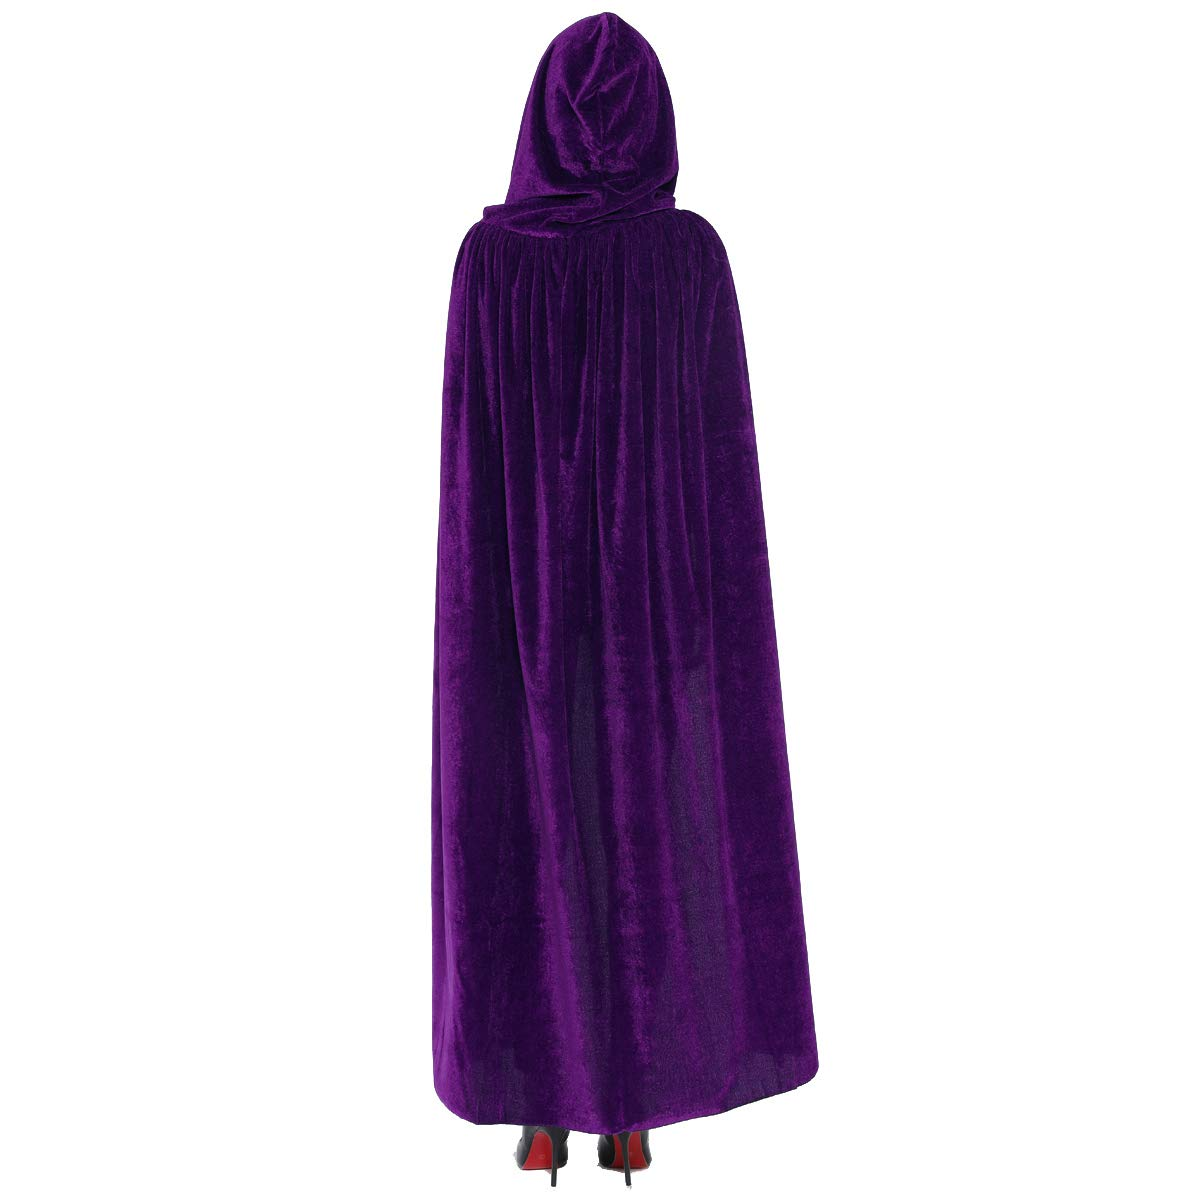 Cloak with Hood Costume Hooded Cape Crushed